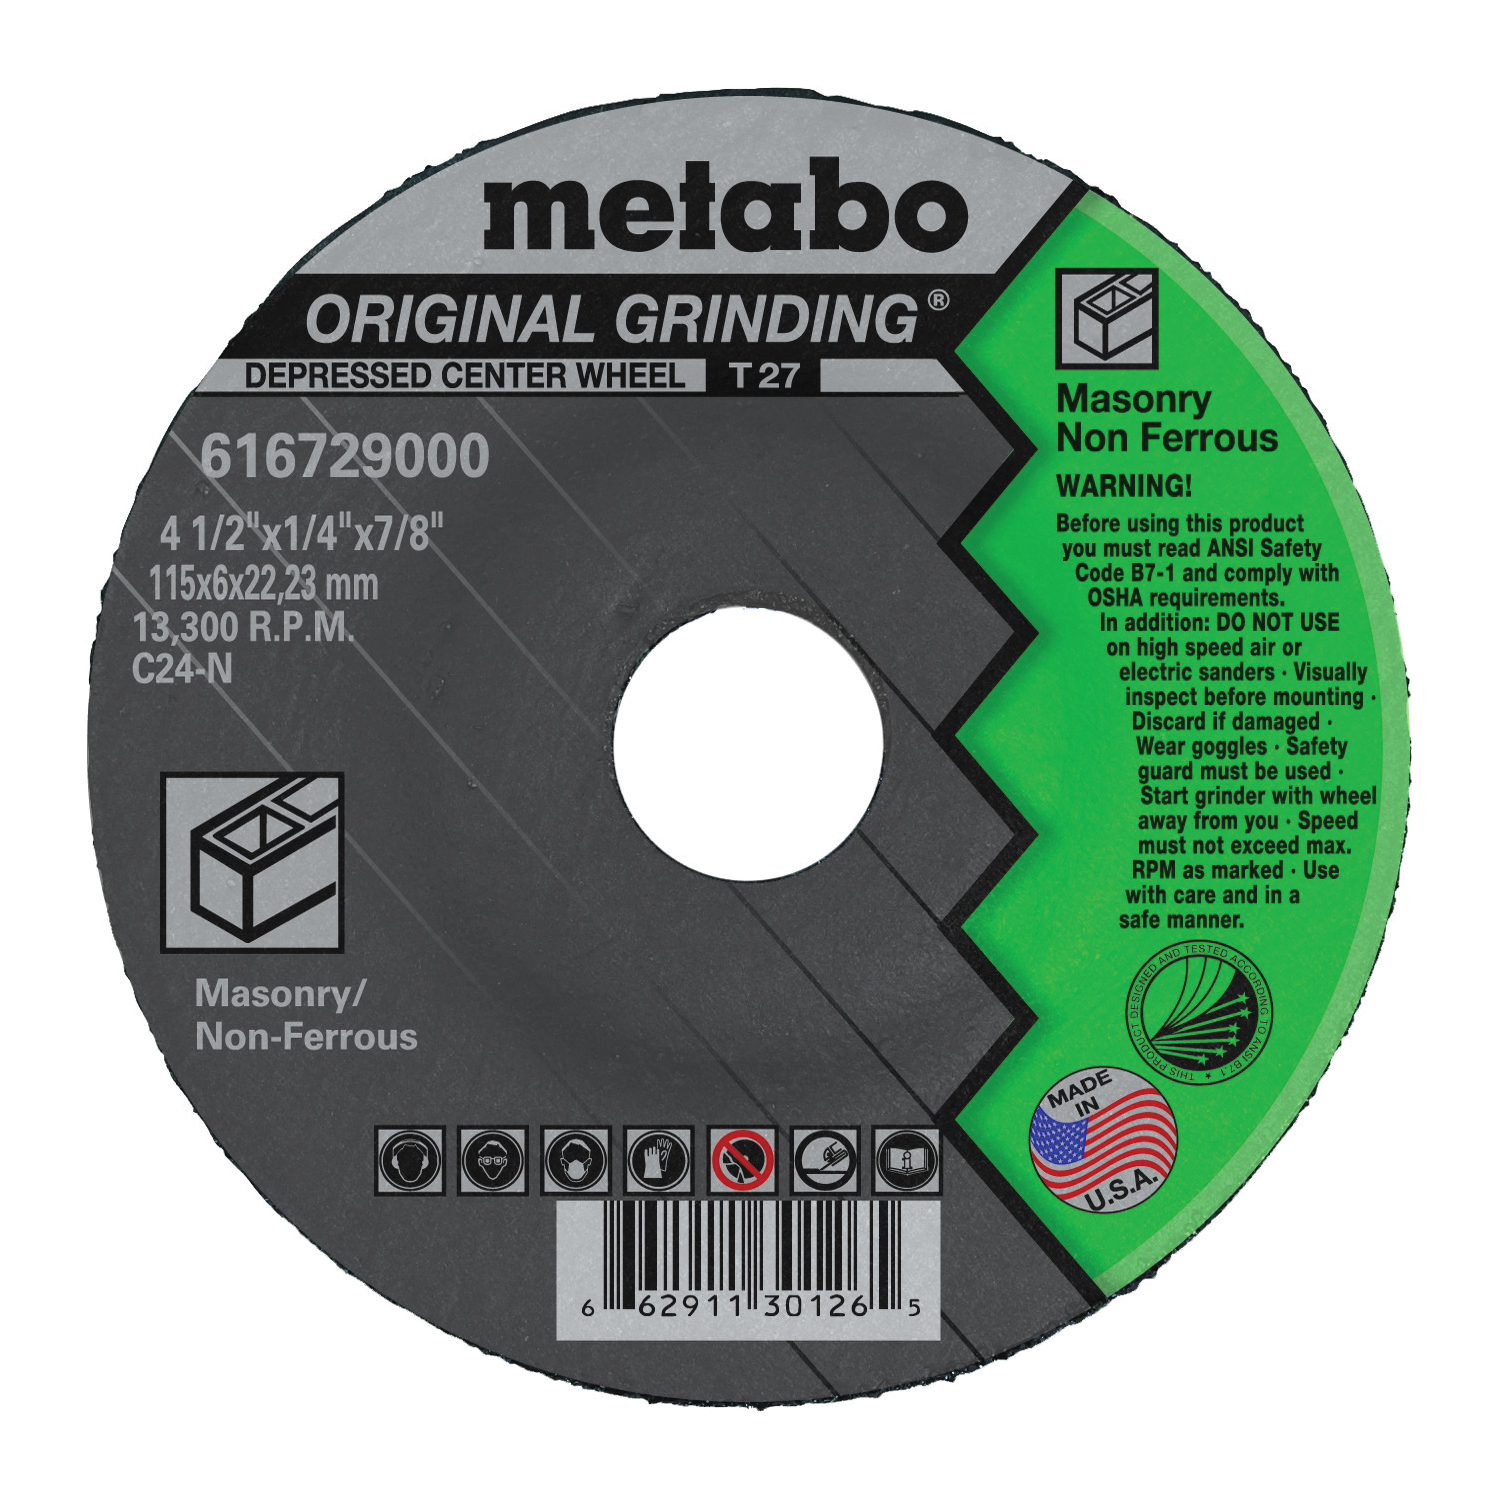 metabo® 616729000 Original Grinding® General Purpose Depressed Center Wheel, 4-1/2 in Dia x 1/4 in THK, 7/8 in Center Hole, C24N Grit, Silicon Carbide Abrasive